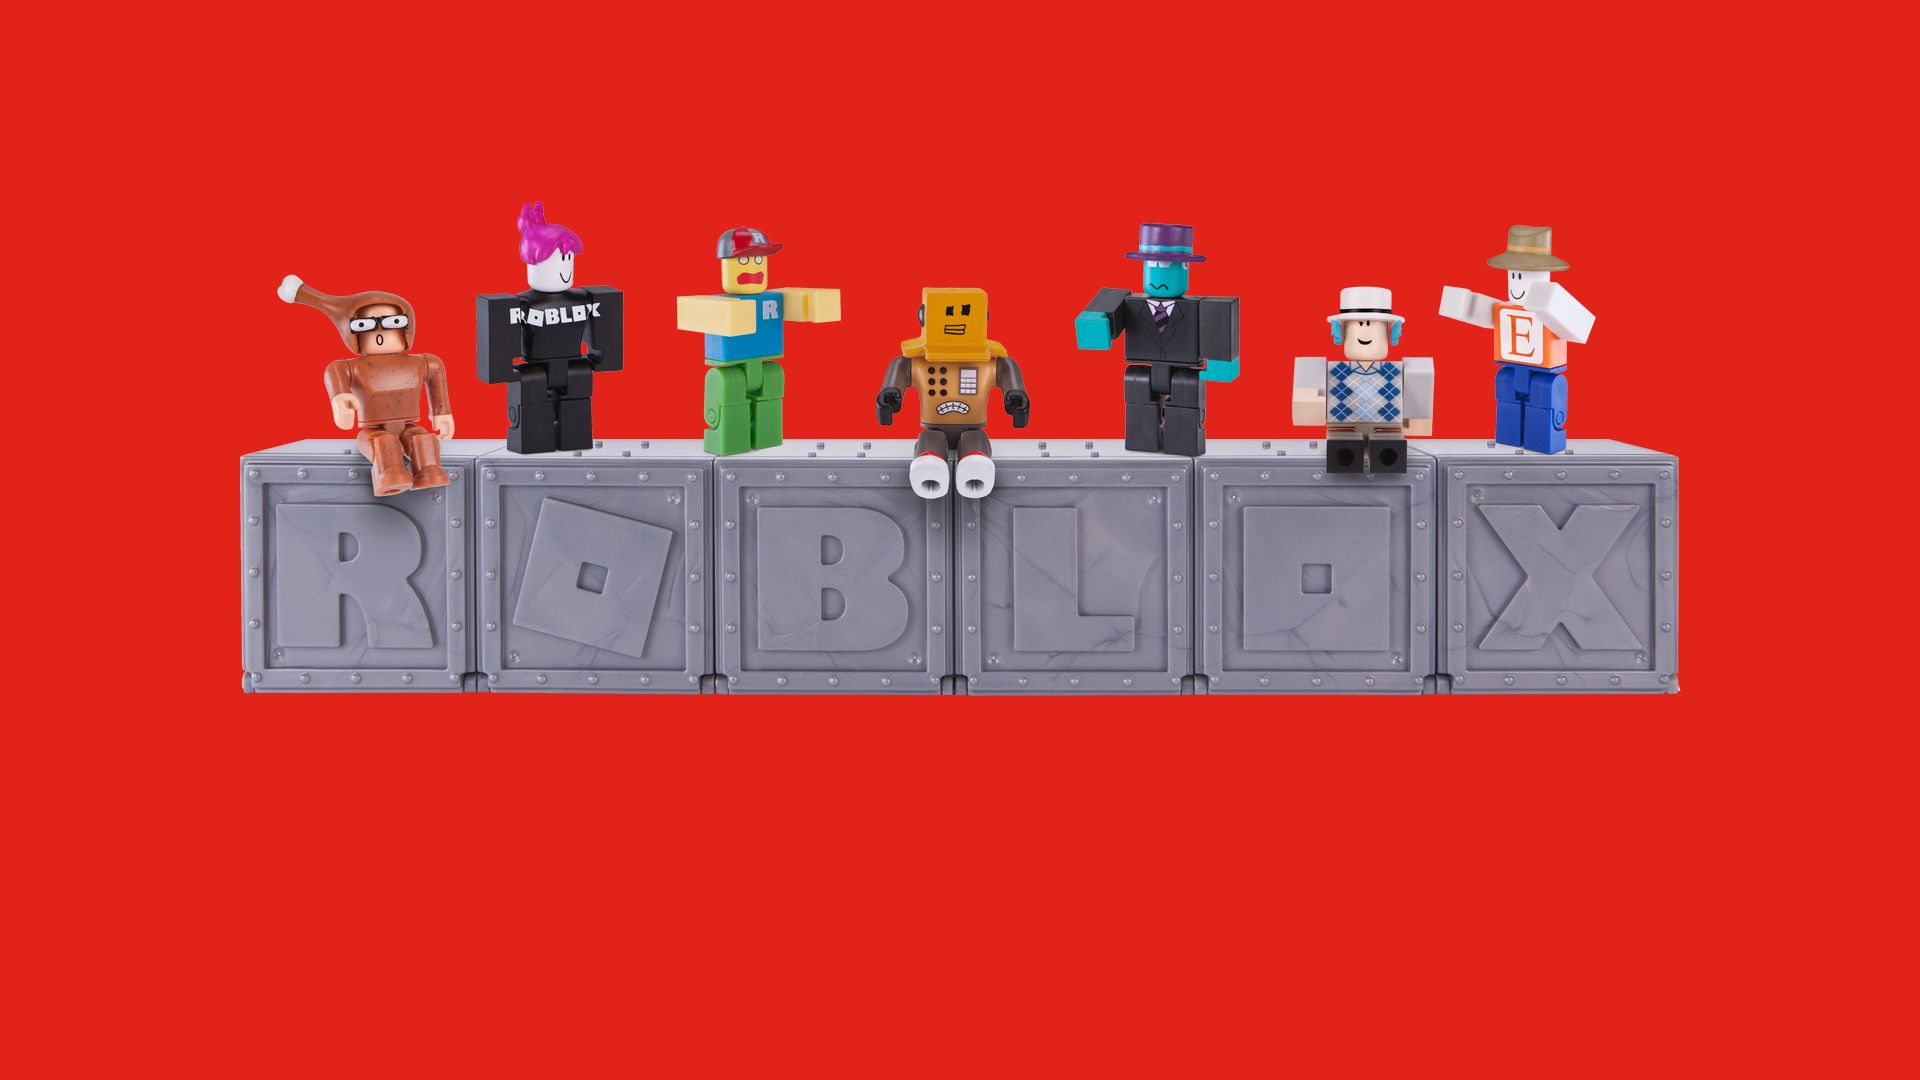 Roblox Wallpapers - Top Free Roblox Backgrounds